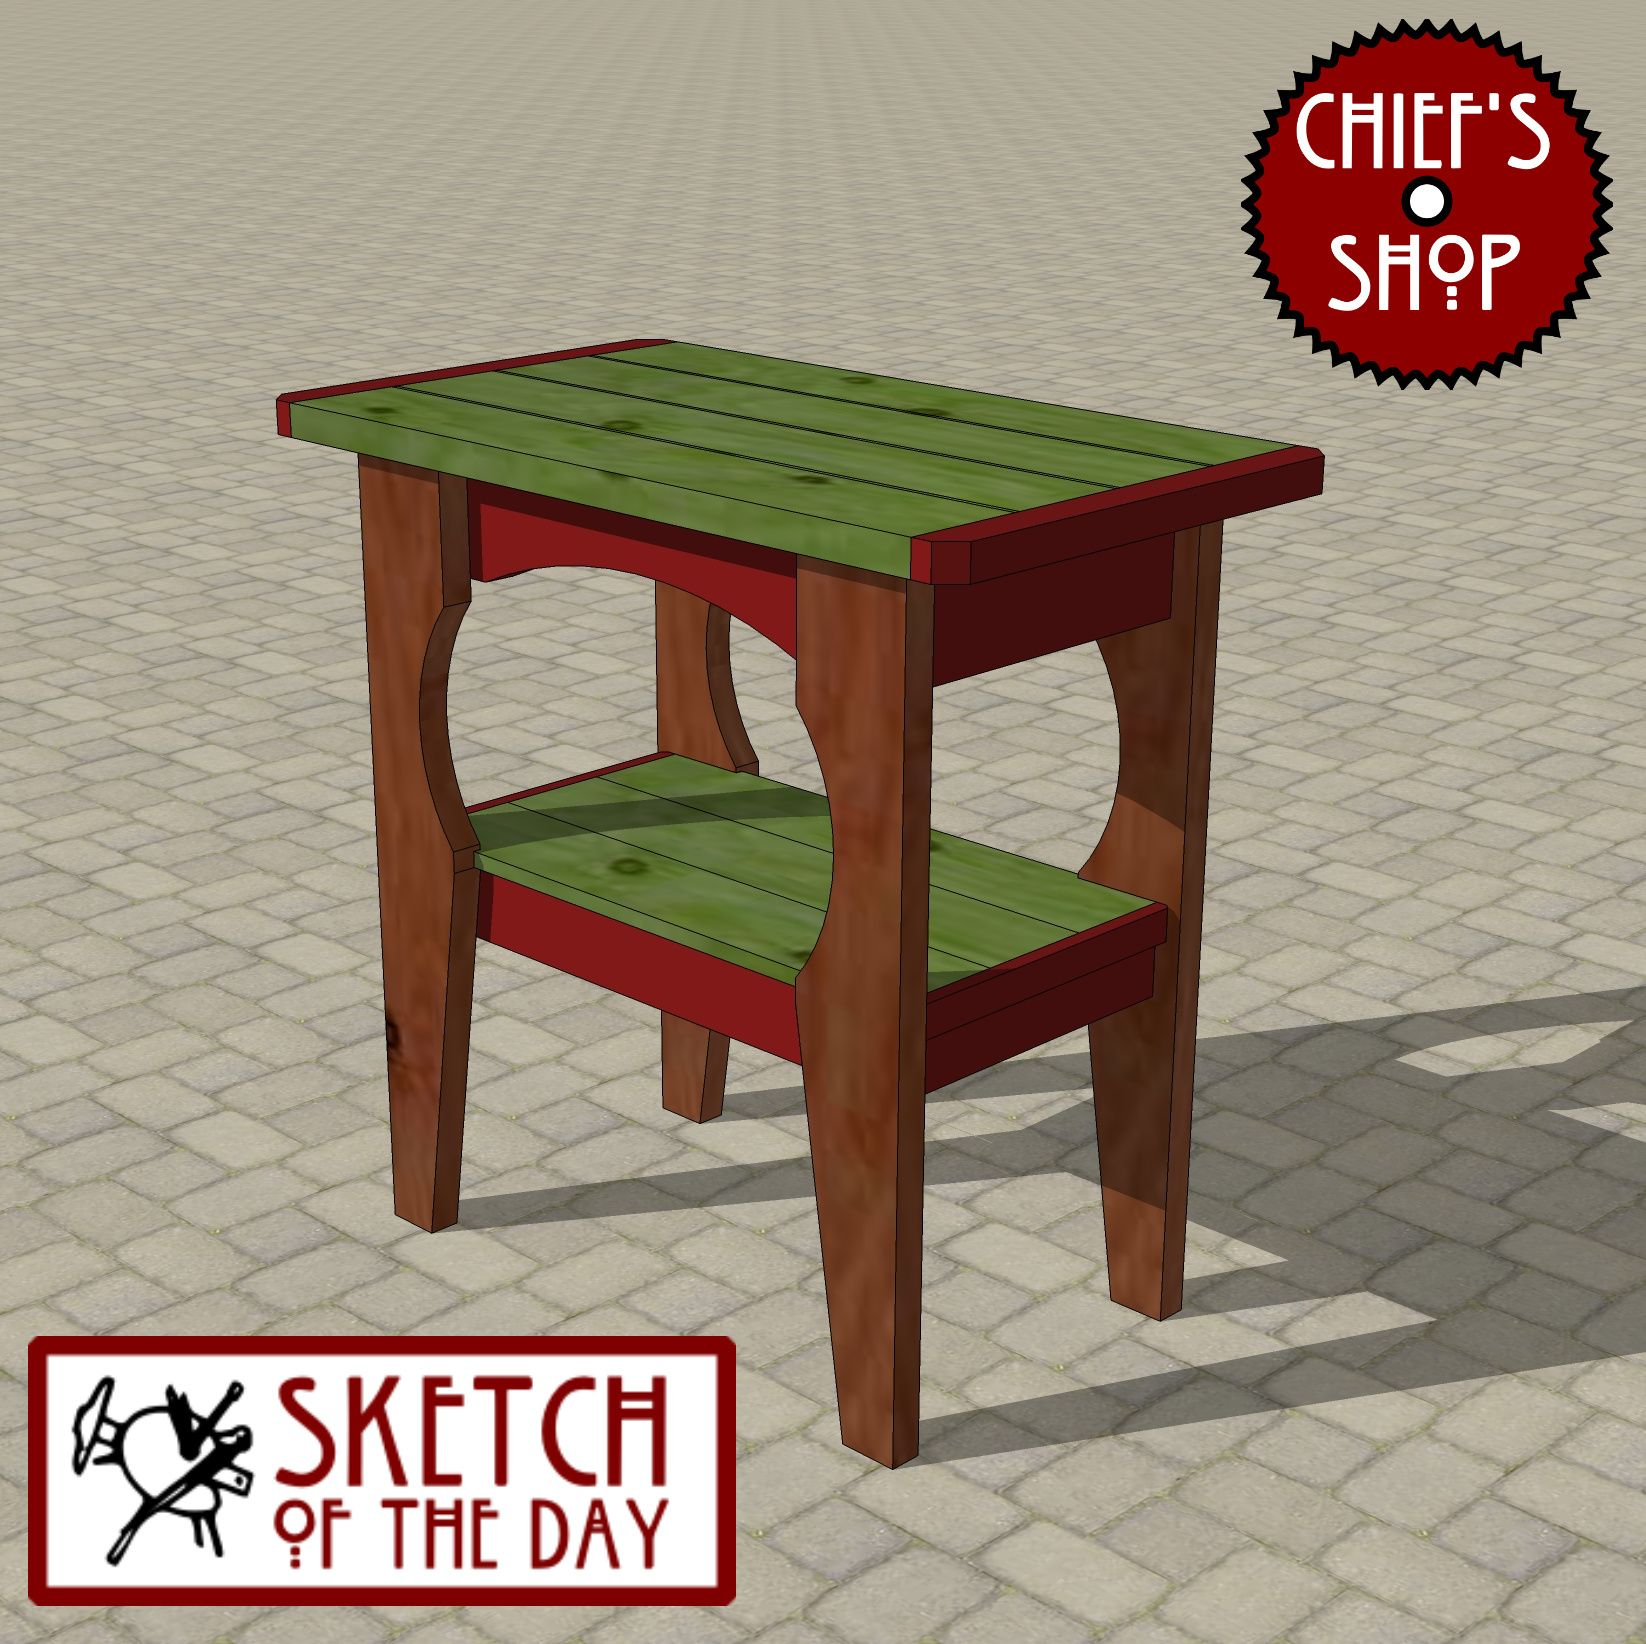 Sketch of the day grill side table woodworking chiefsshop sketch of the day grill side table geotapseo Gallery